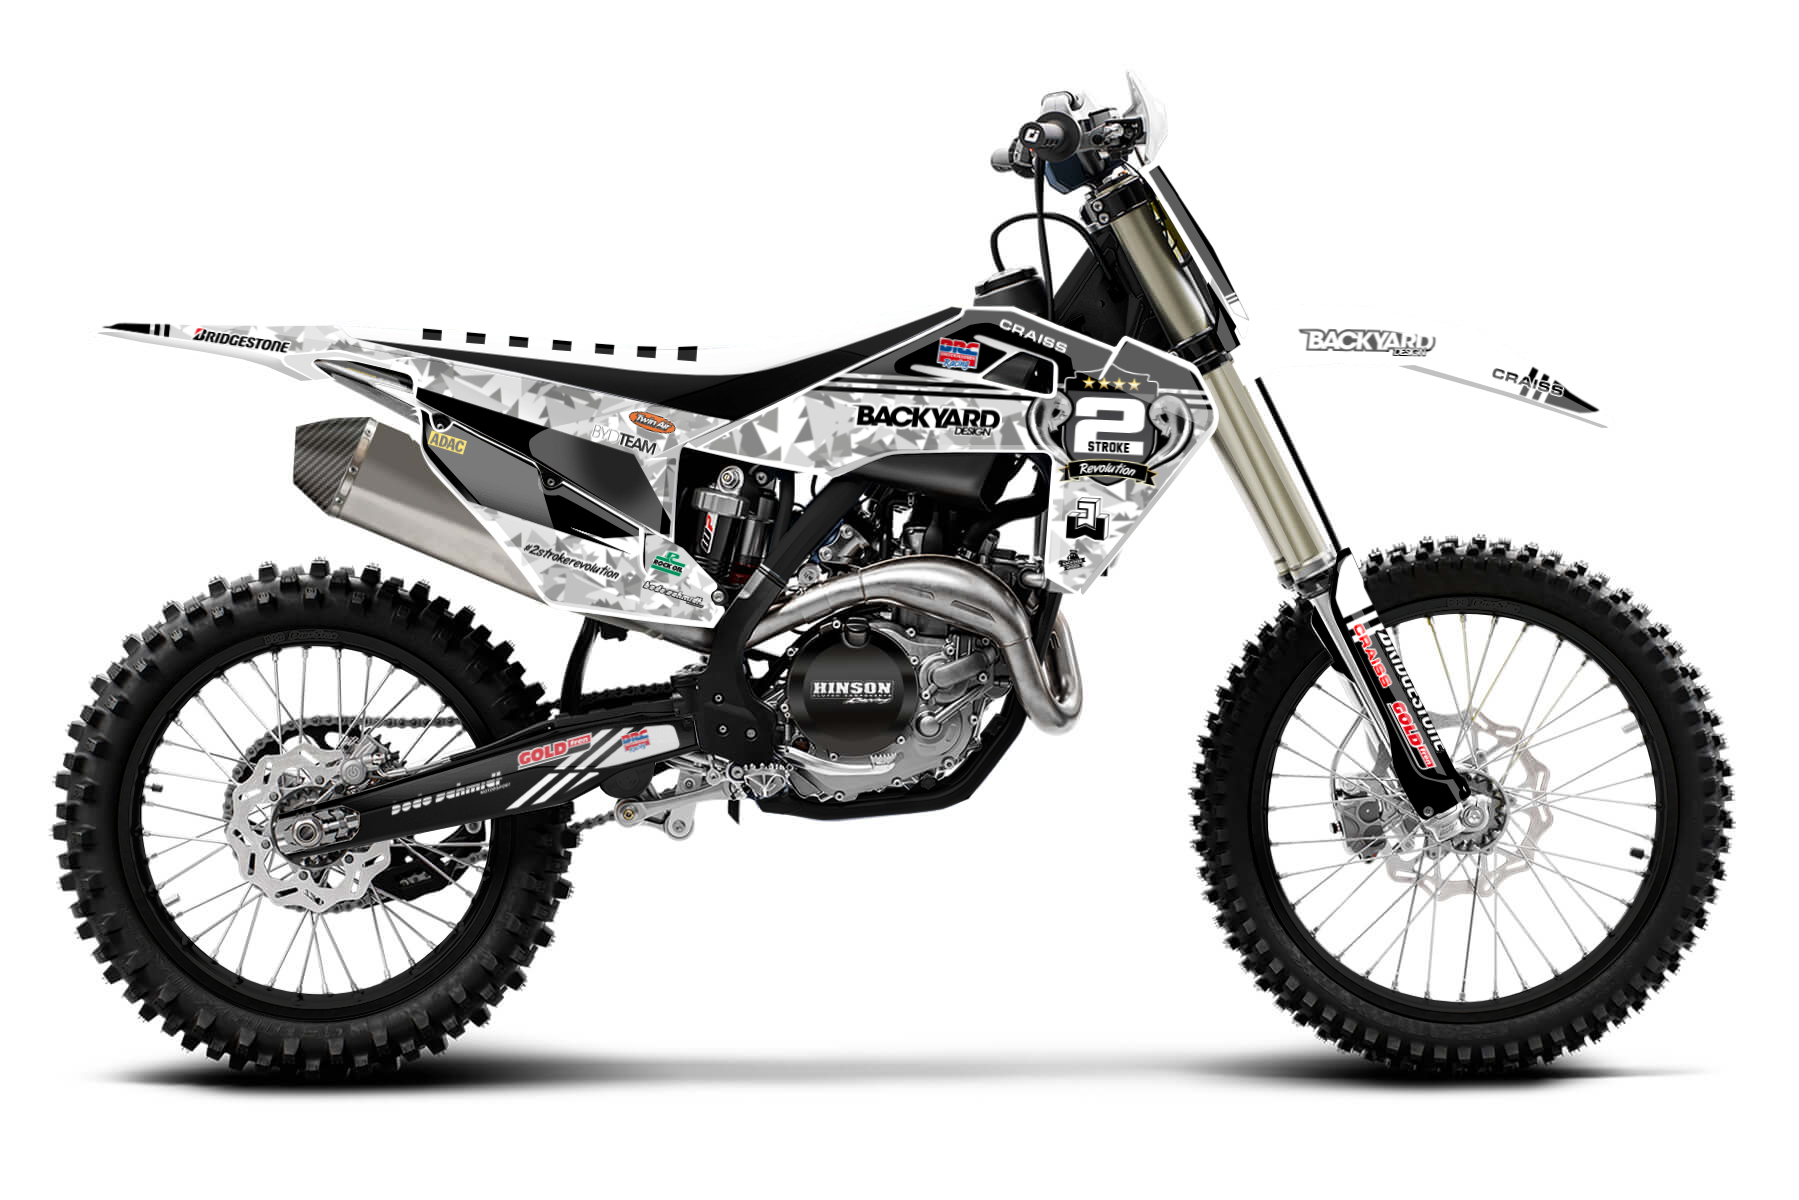 Husqvarna FC350 Graphic Kits  The Husqvarna FC350 combines a lightweight engine with a sturdy frame and enough power to win races. If you are looking for a competitive bike, this one is perfect for you.